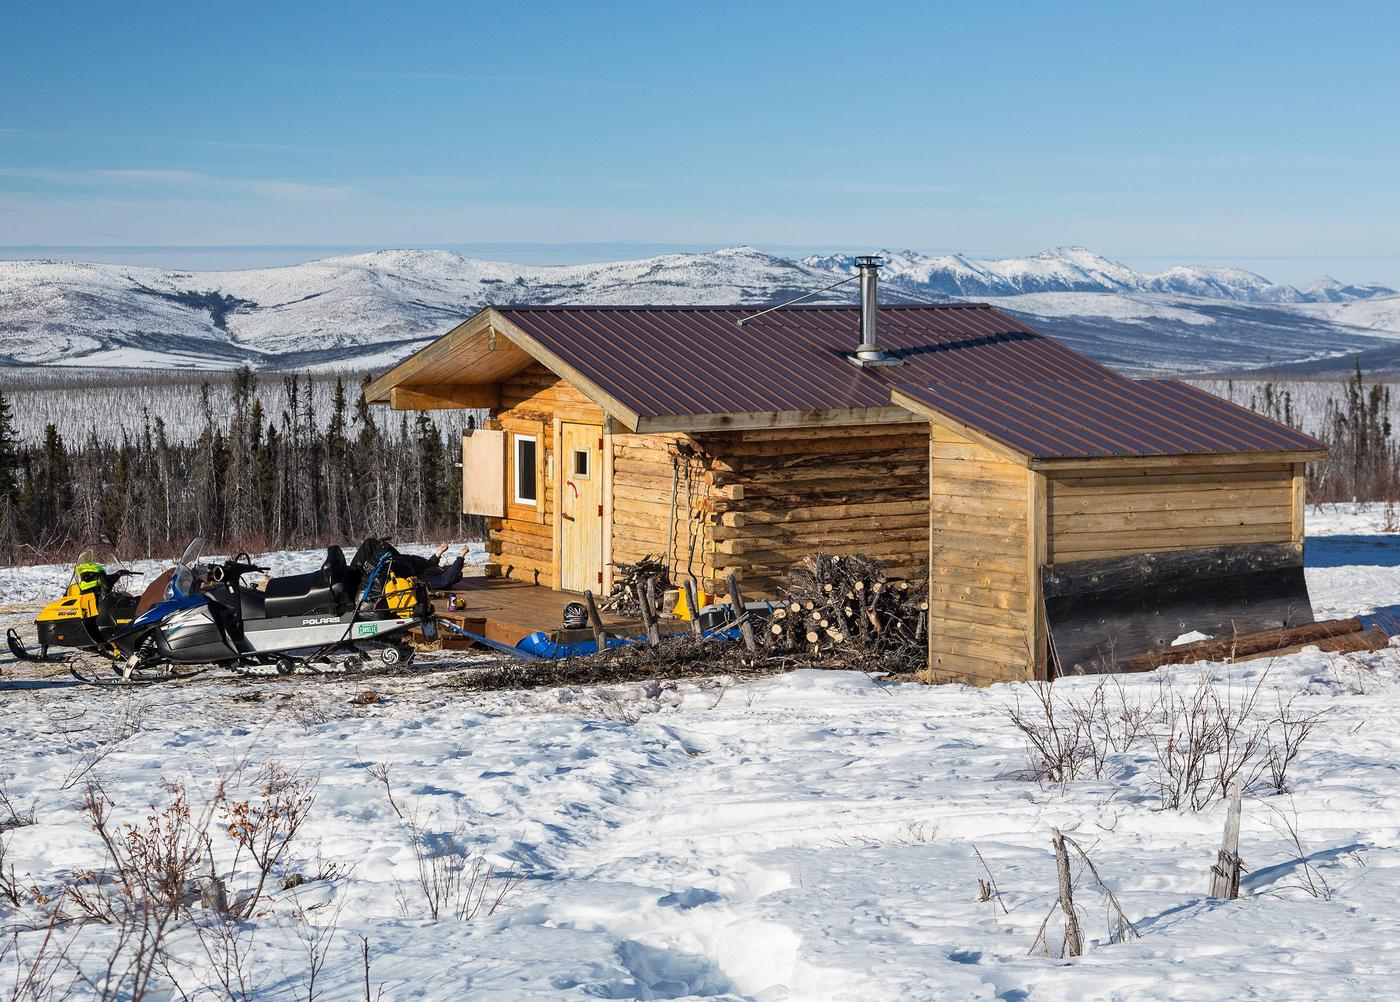 Winter view of a log cabin and woodshed with mountains in the distanceCrowberry Cabin has expansive views of the Beaver Creek valley and White Mountains.